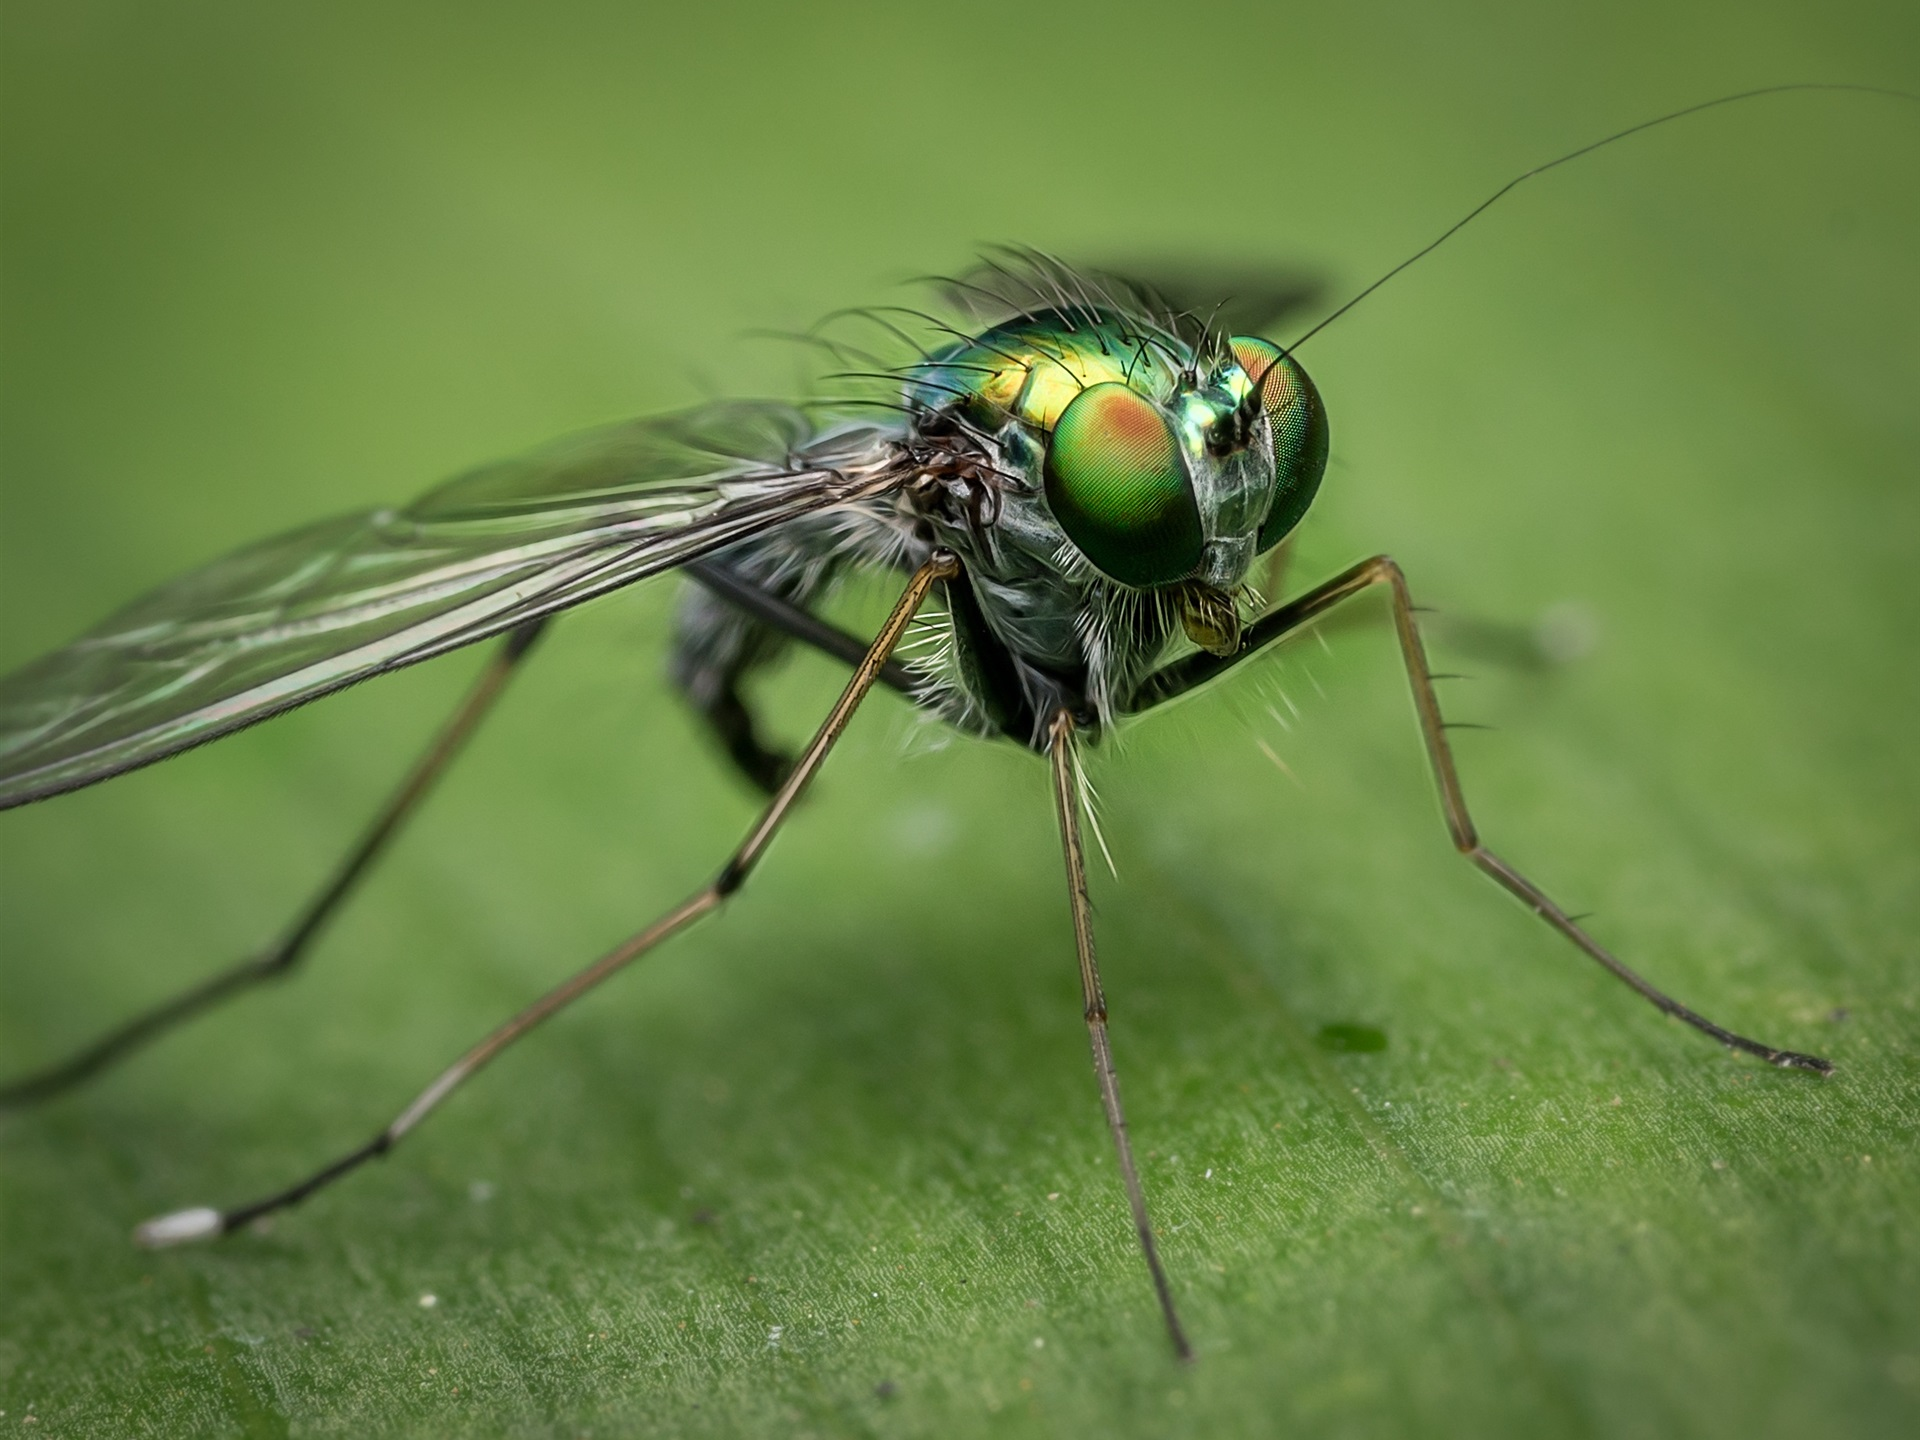 Wallpapers Insect close